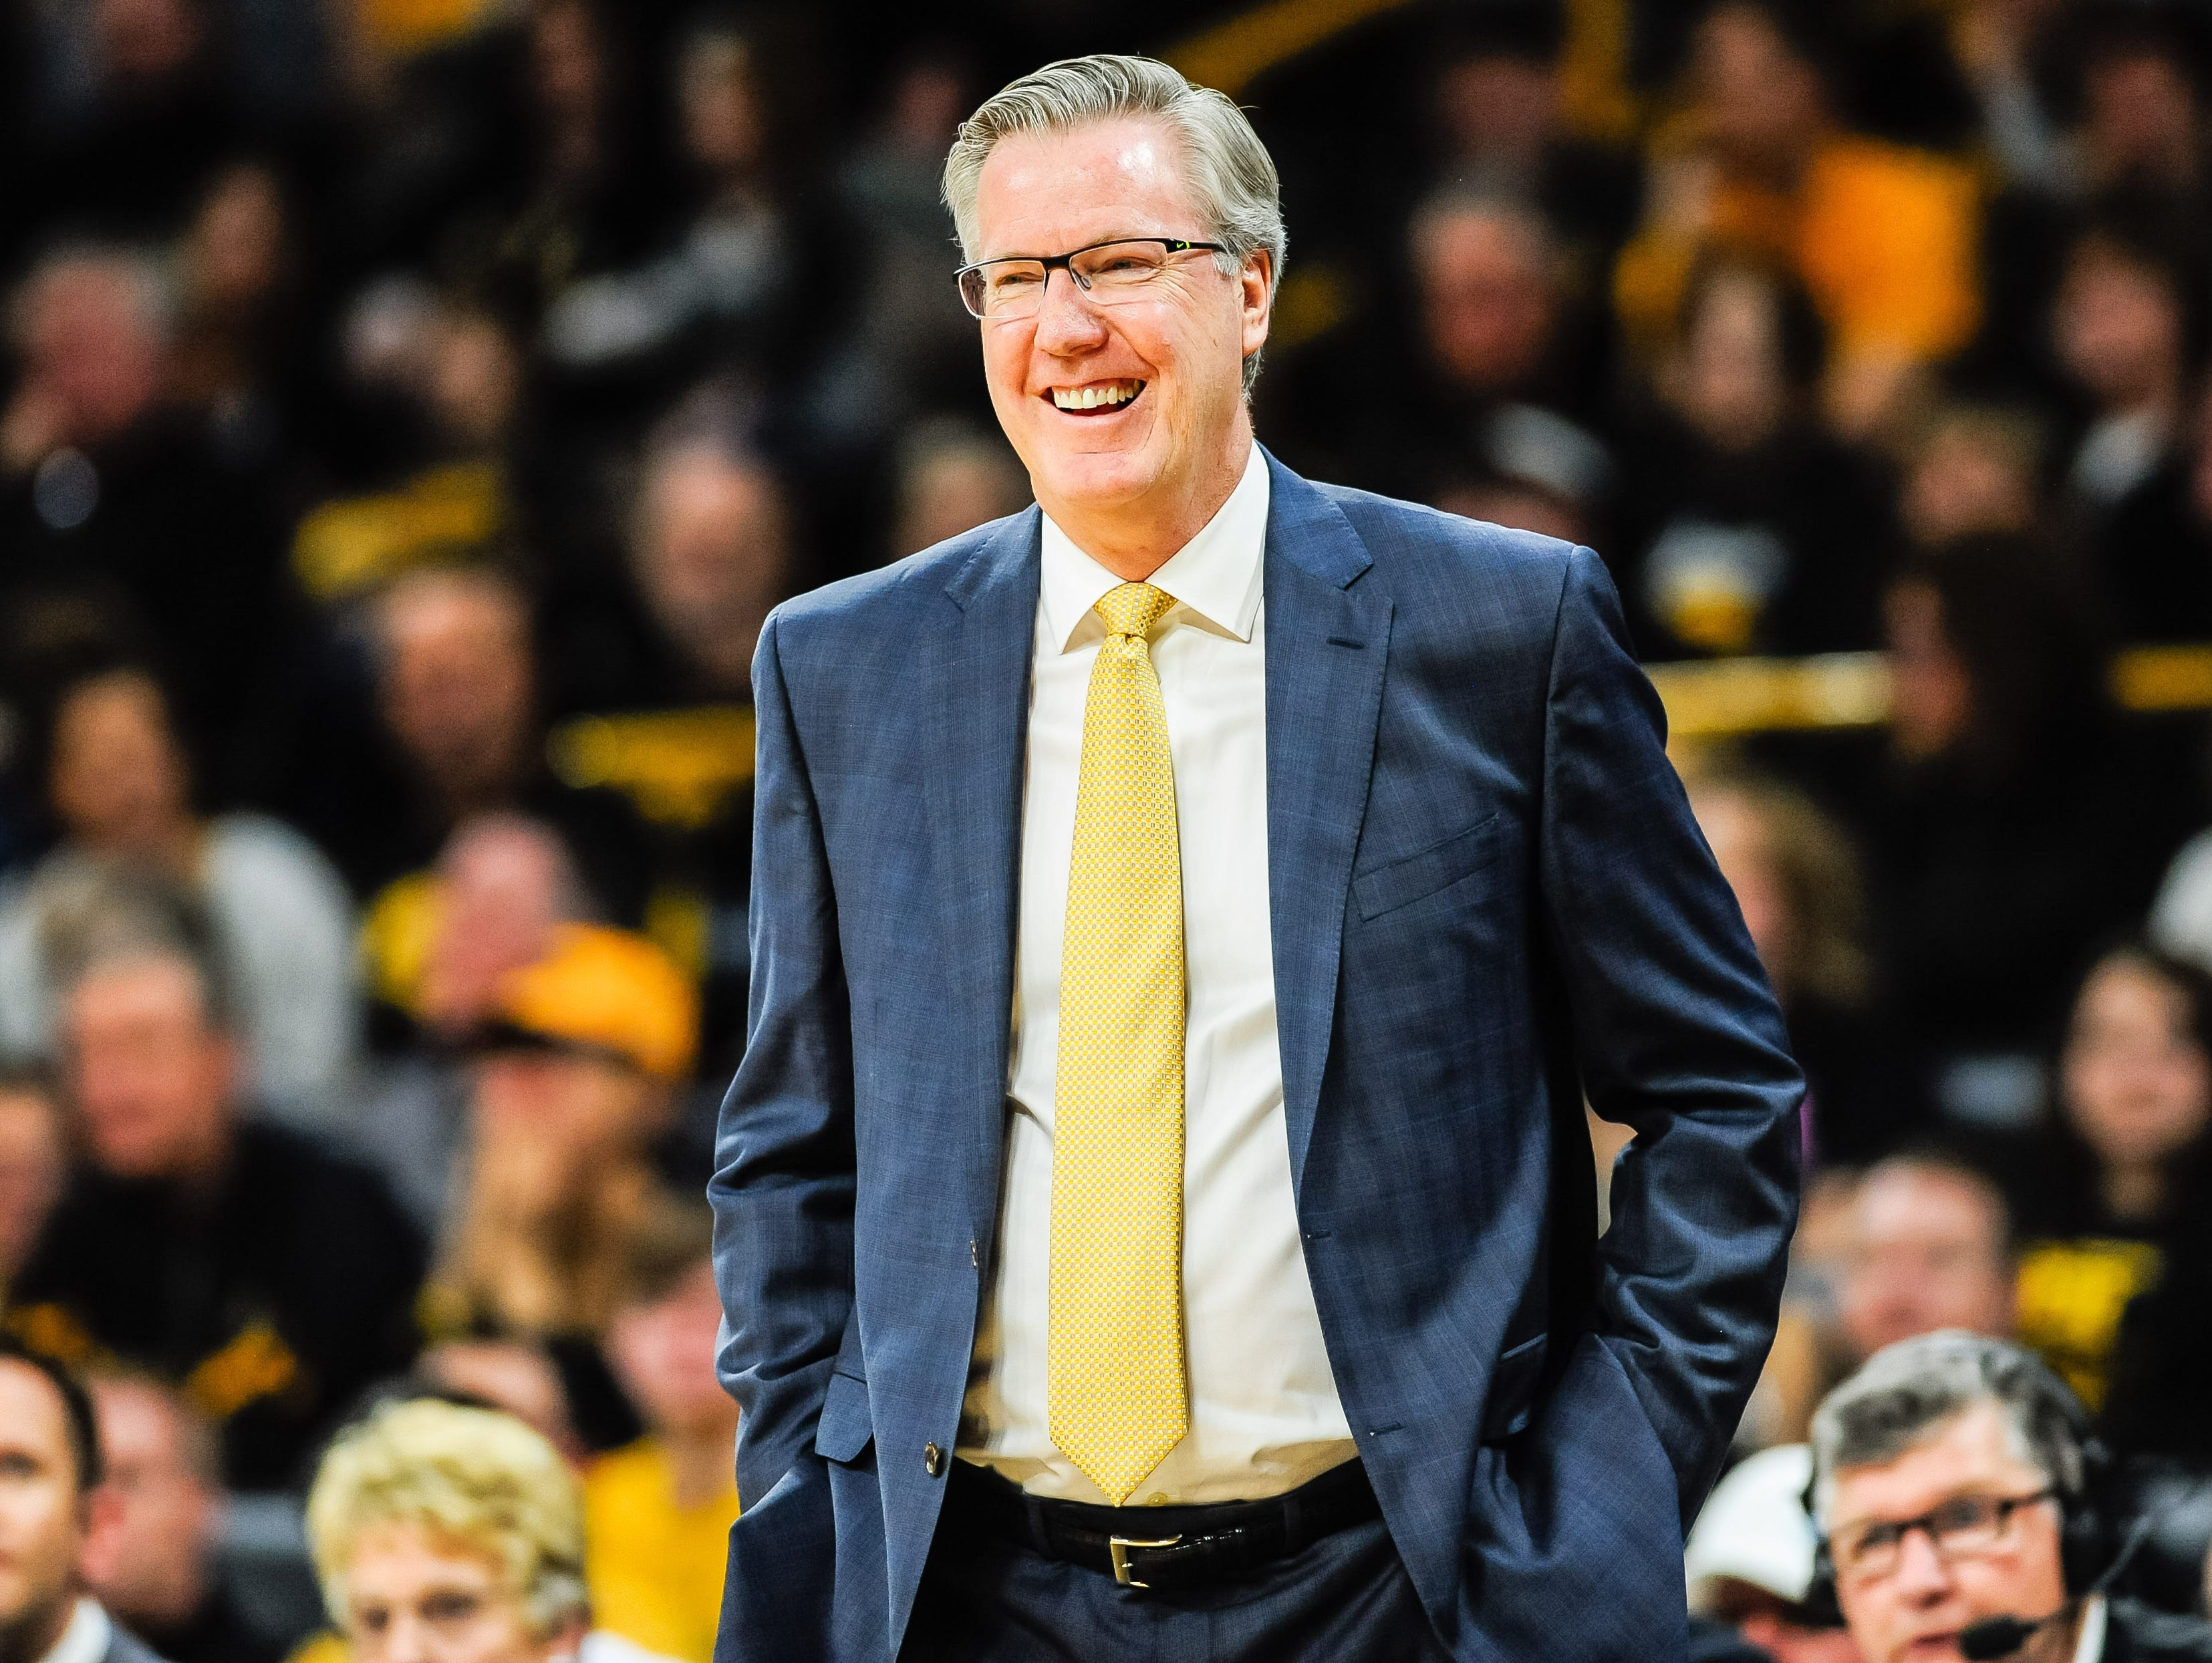 Fran McCaffery will coach his sons Connor and Patrick in college. Both are headed to Iowa.